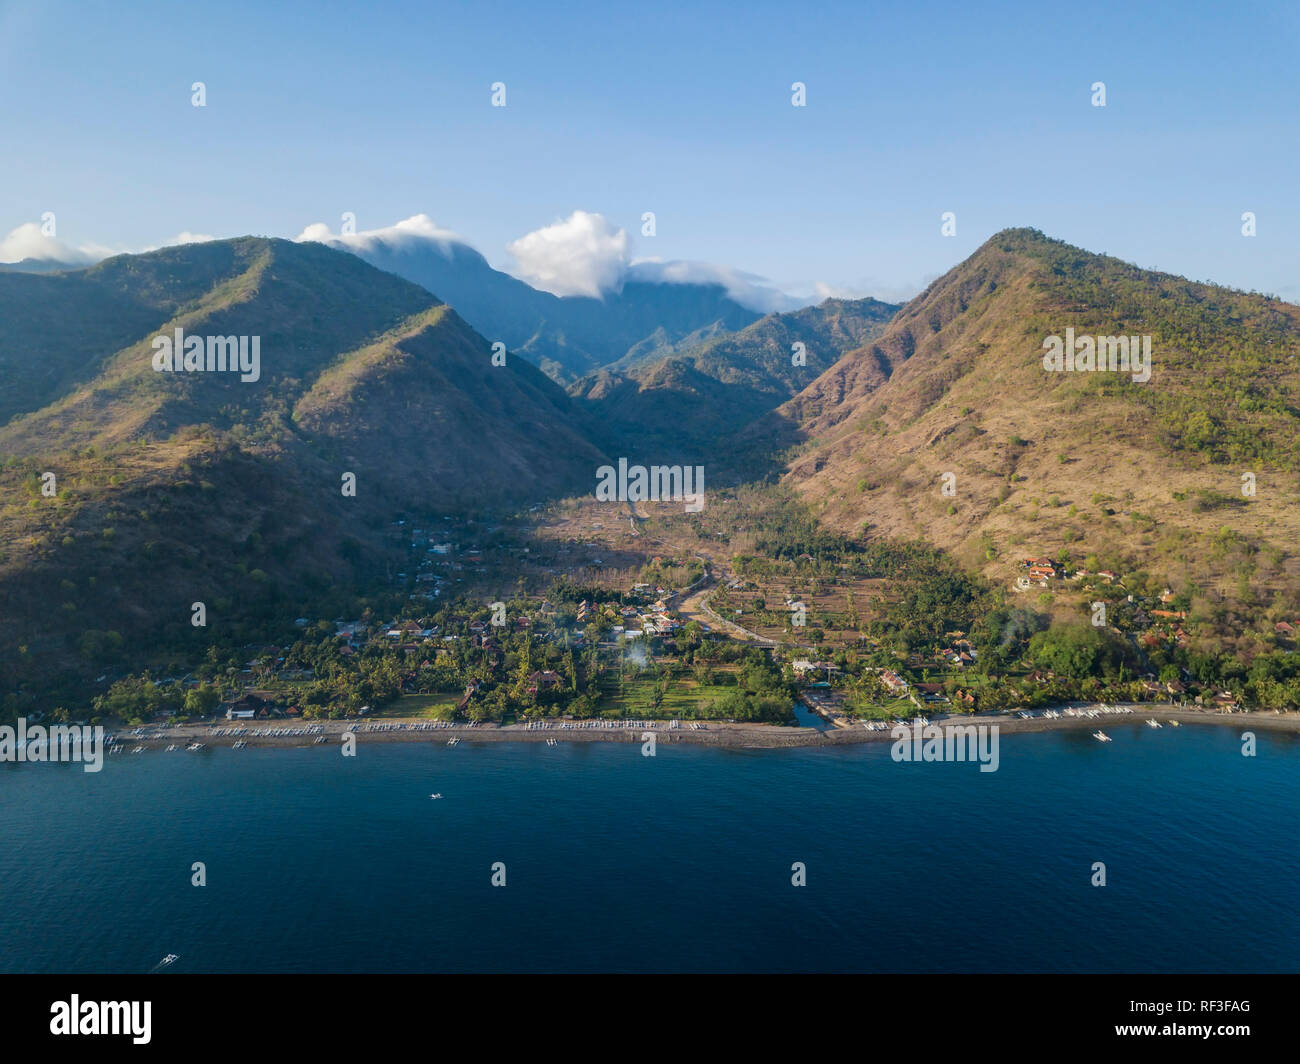 Indonesia, Bali, Amed, Aerial view of Lipah beach and volcano Agung - Stock Image